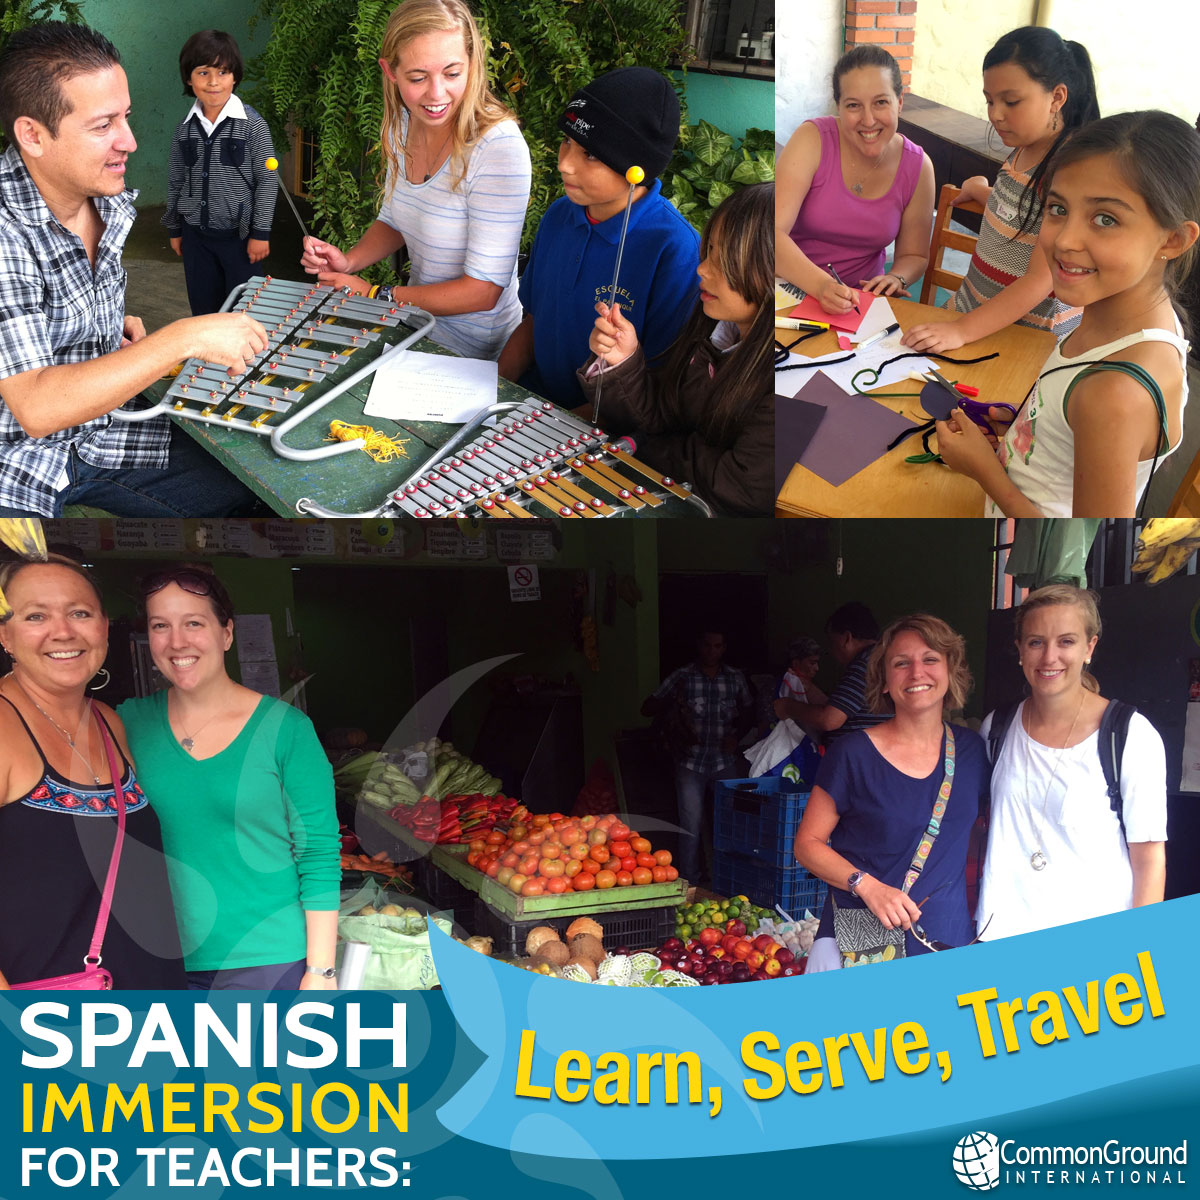 Spanish immersion for educators